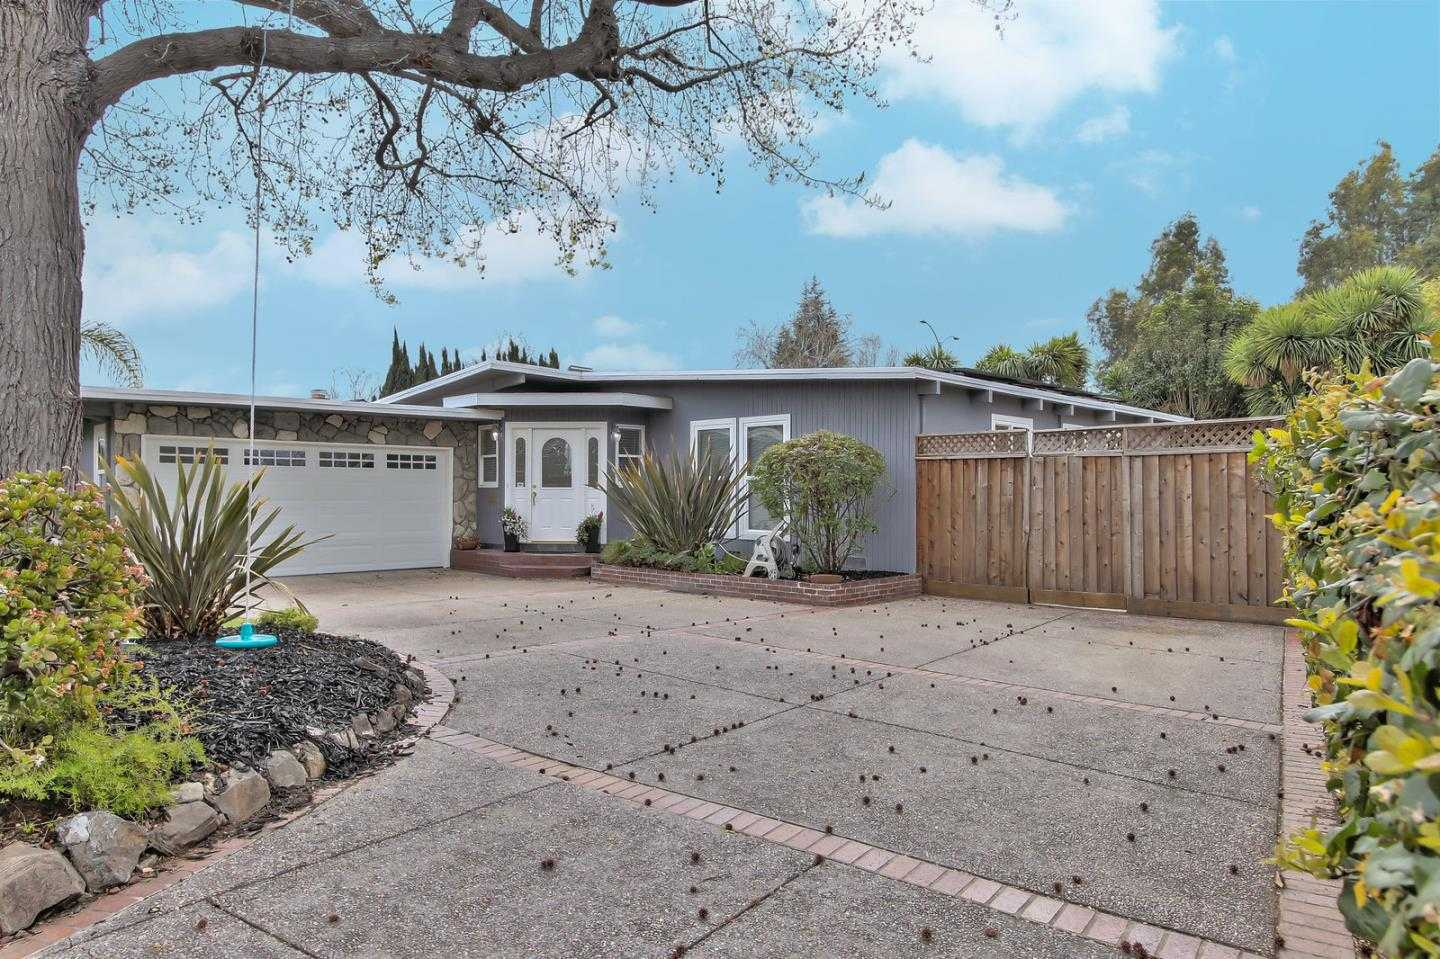 $2,400,000 - 3Br/2Ba -  for Sale in Sunnyvale